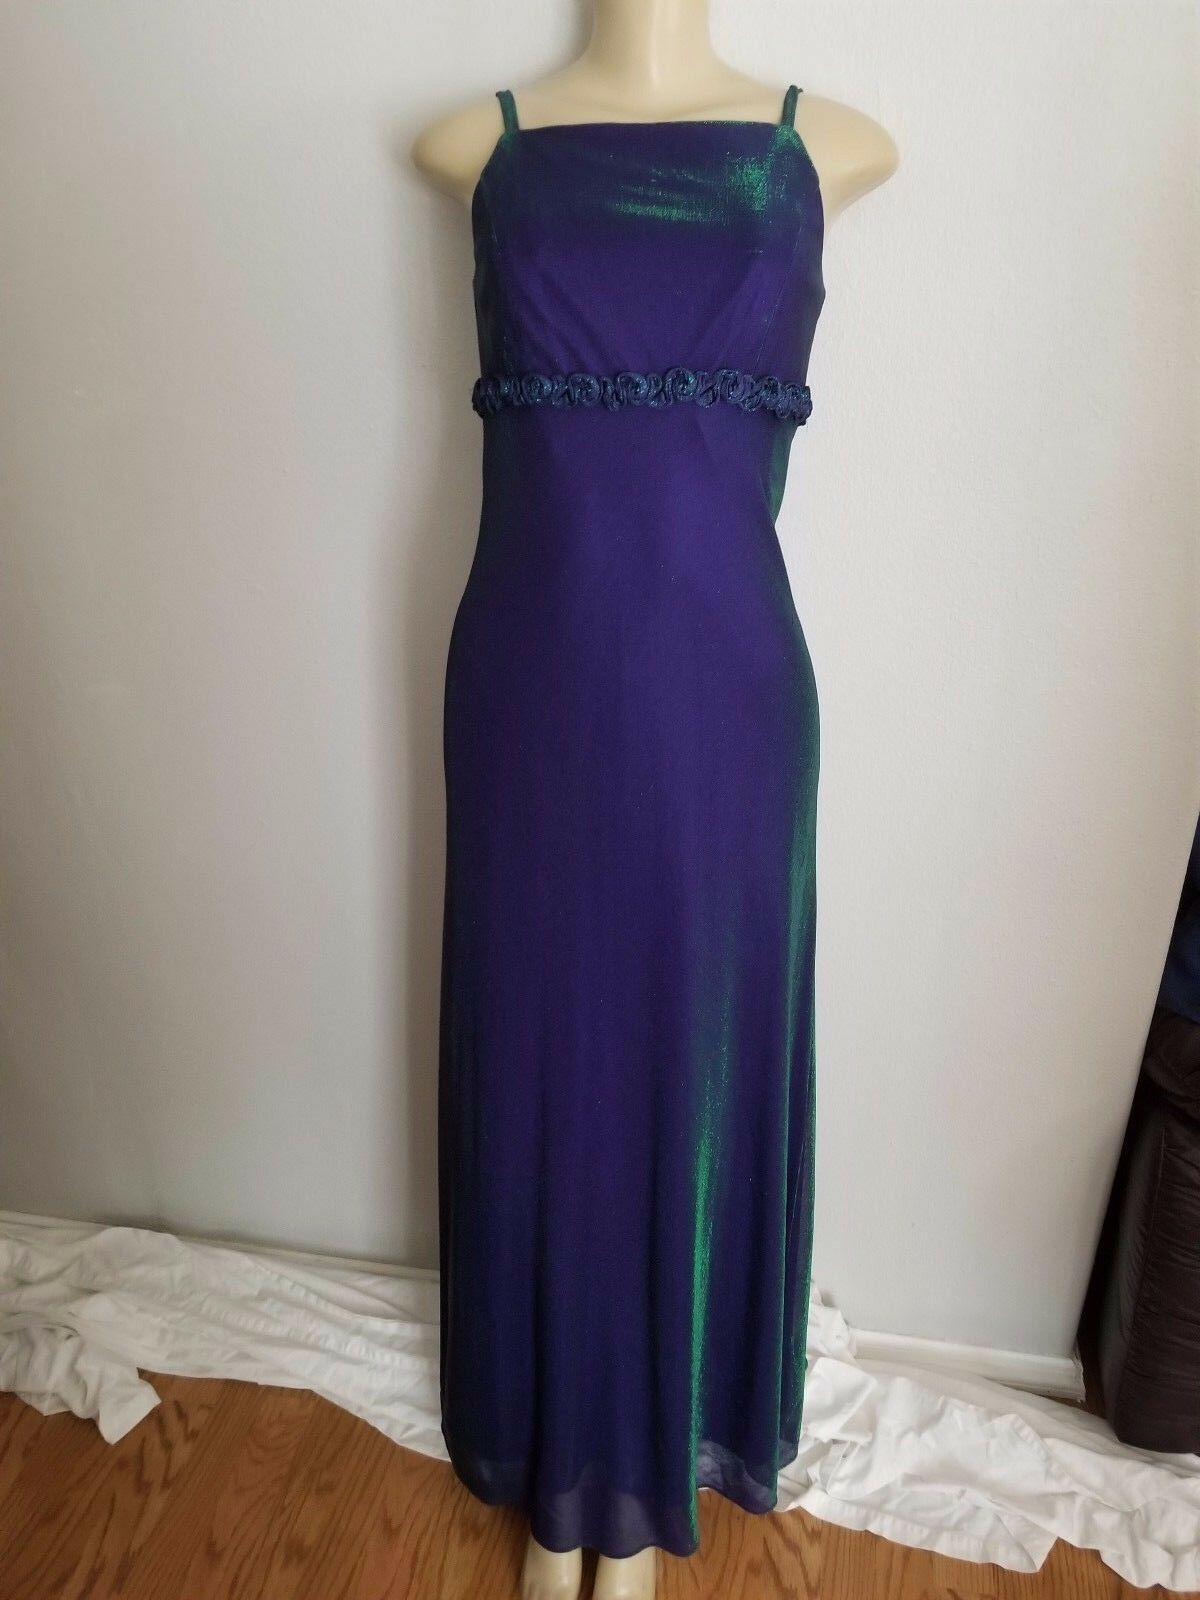 NWT Blondie Nites formal gown Purple/green irredescent color size 5/6 (G0215)